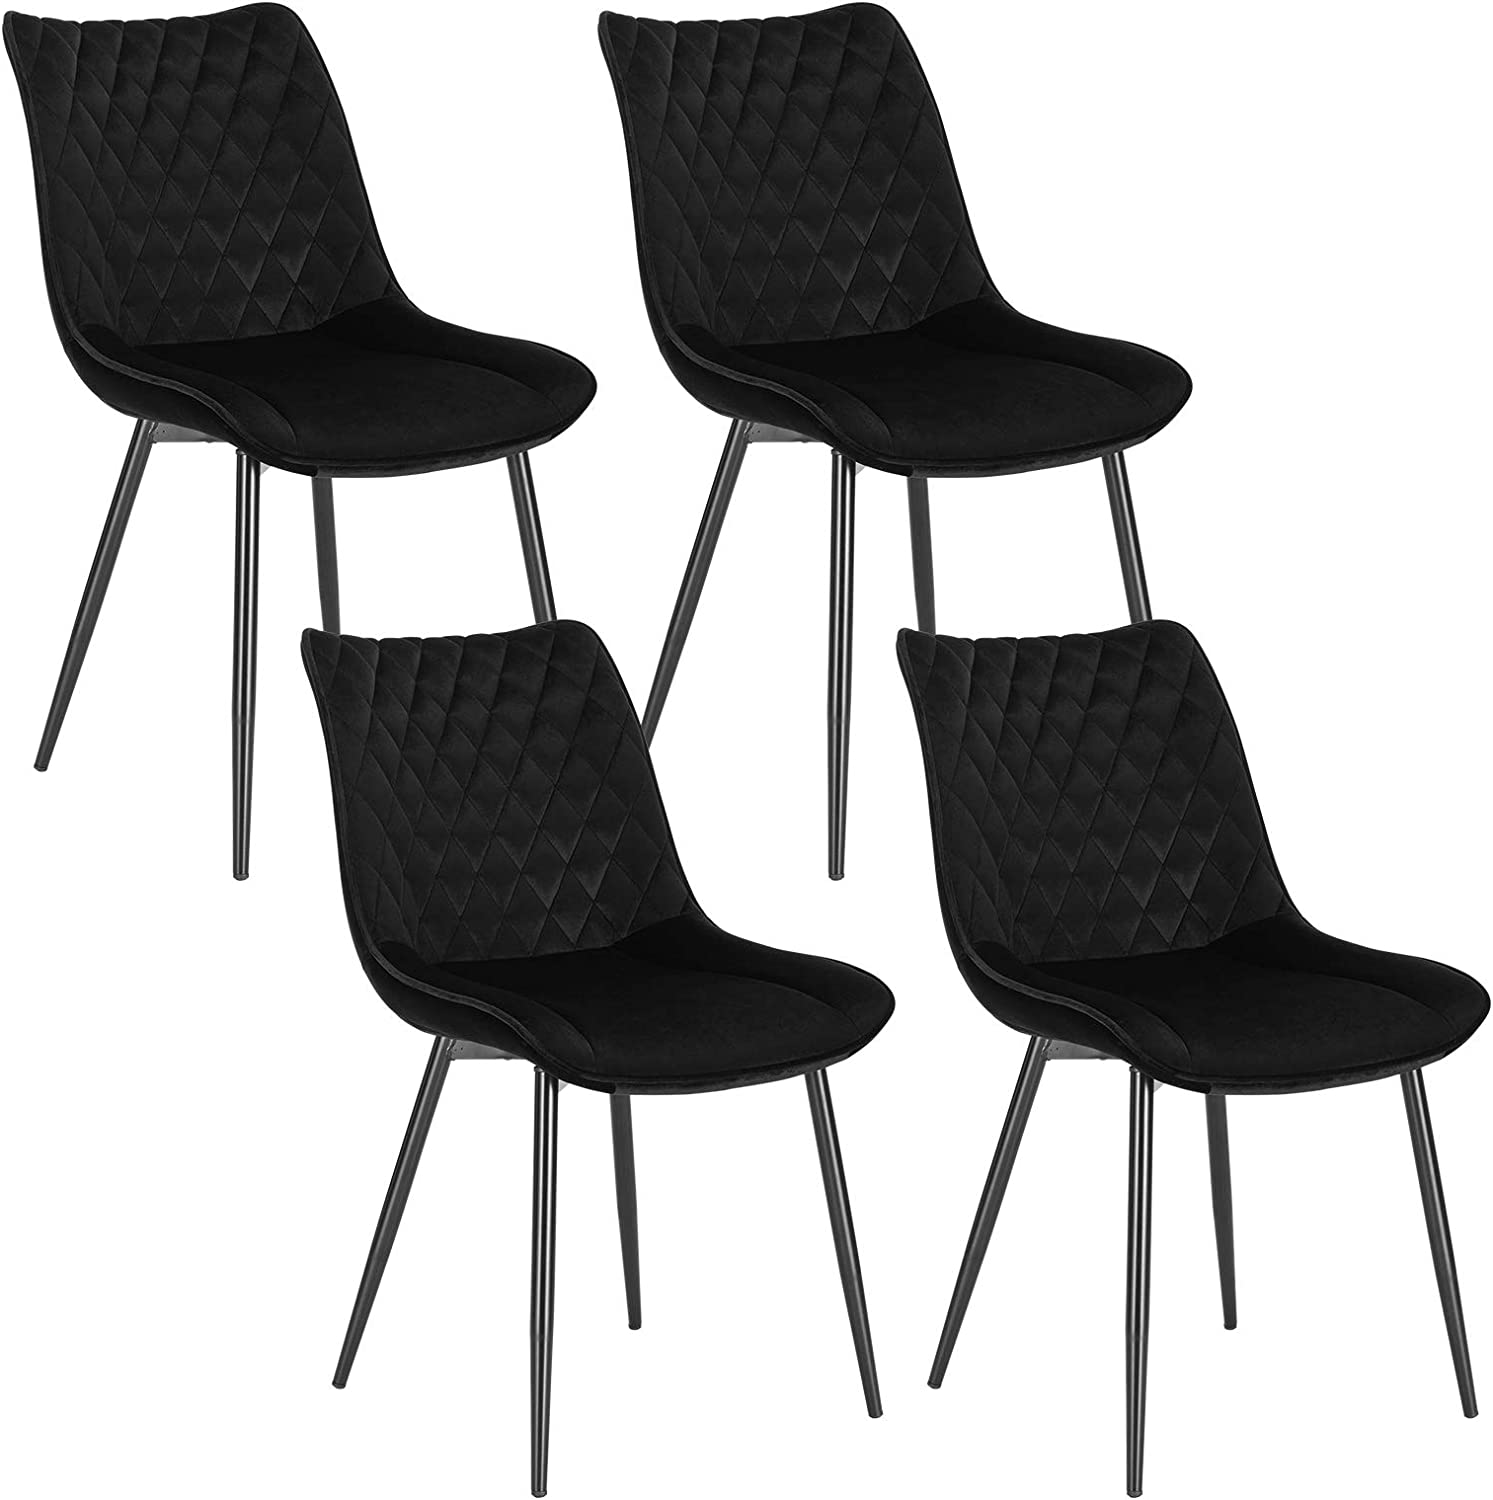 WOLTU Dining Chairs Set of 4 pcs Kitchen Counter Chairs Lounge Leisure Living Room Corner Chairs Black Velvet Reception Chairs with Backrest and Padded Seat